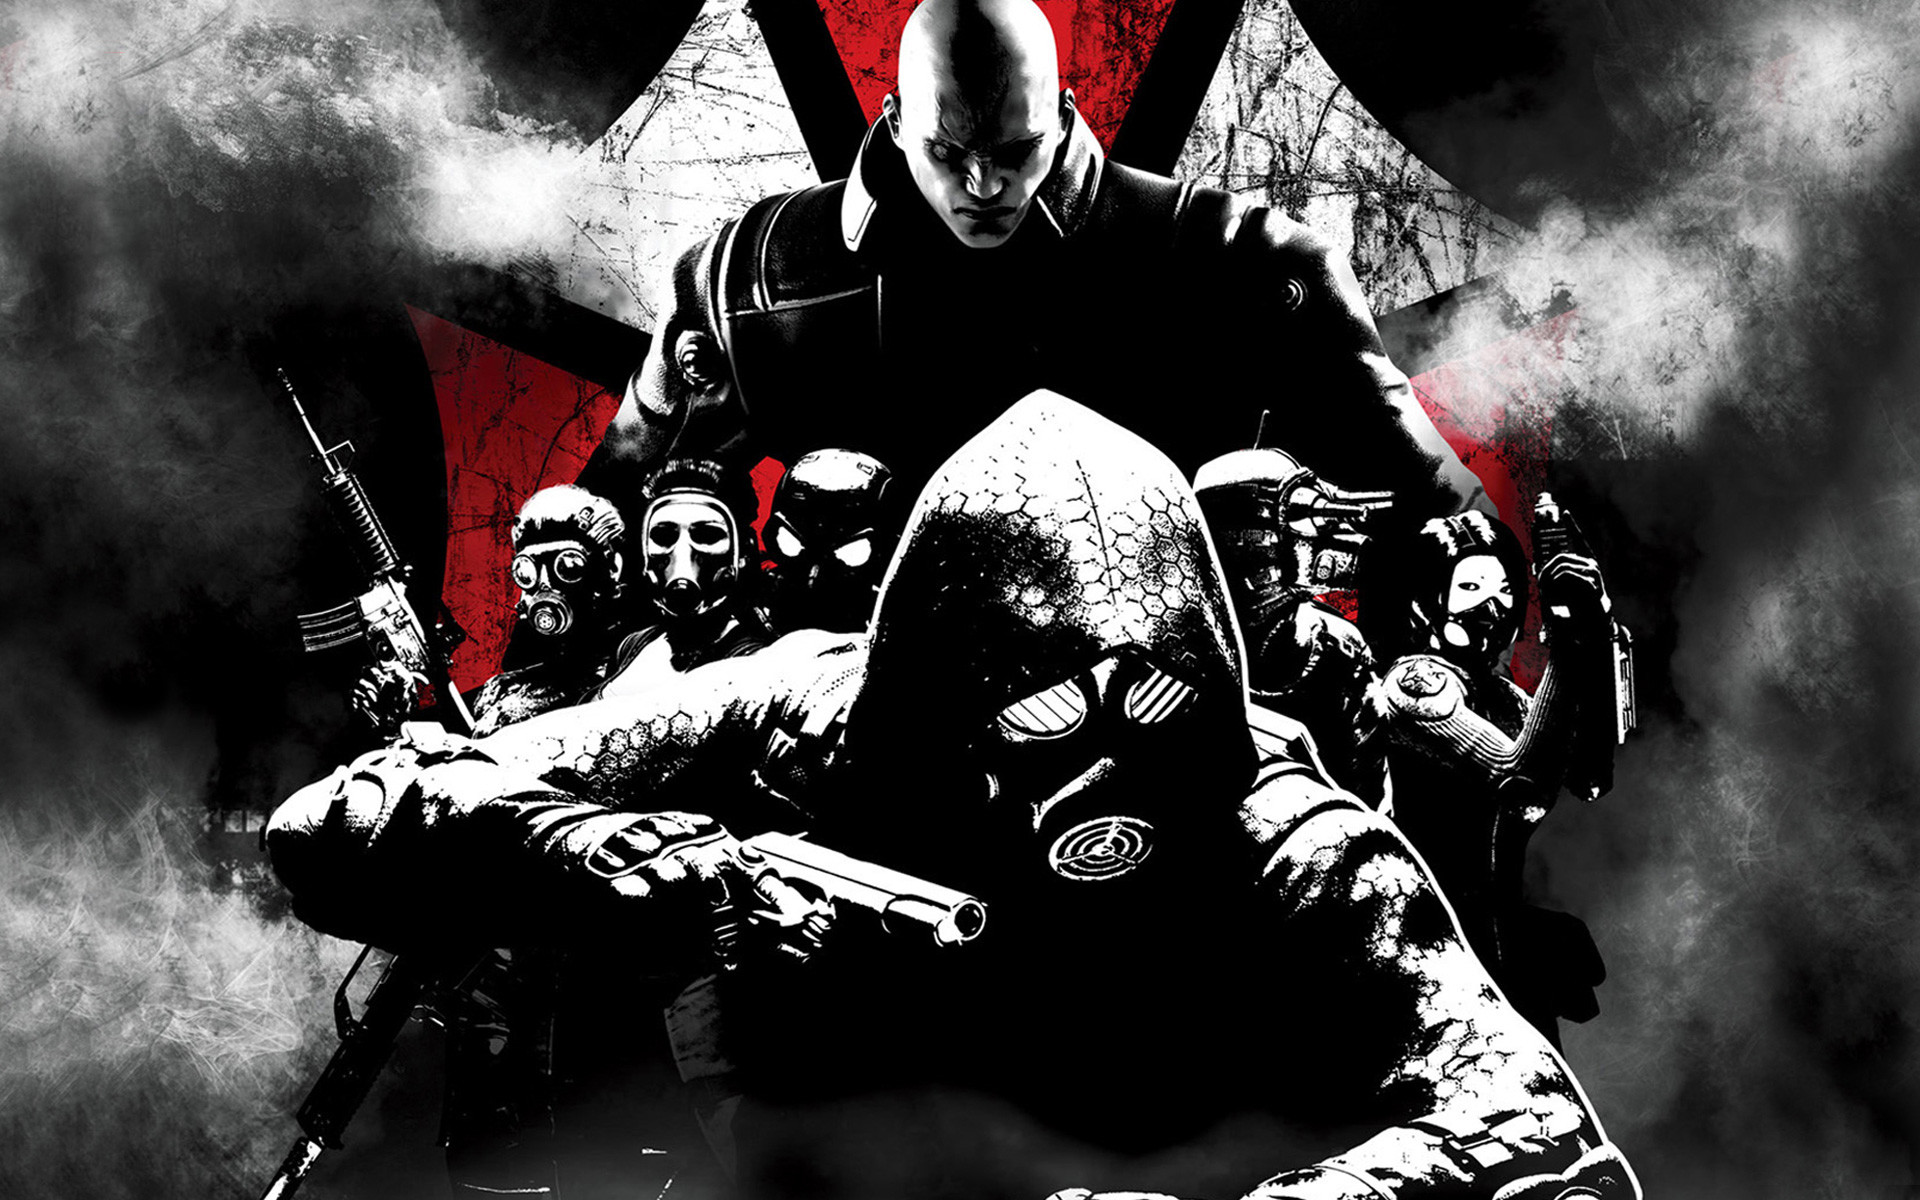 Hd wallpaper resident evil - 1920x1200 272 Resident Evil Hd Wallpapers Backgrounds Wallpaper Abyss Page 5